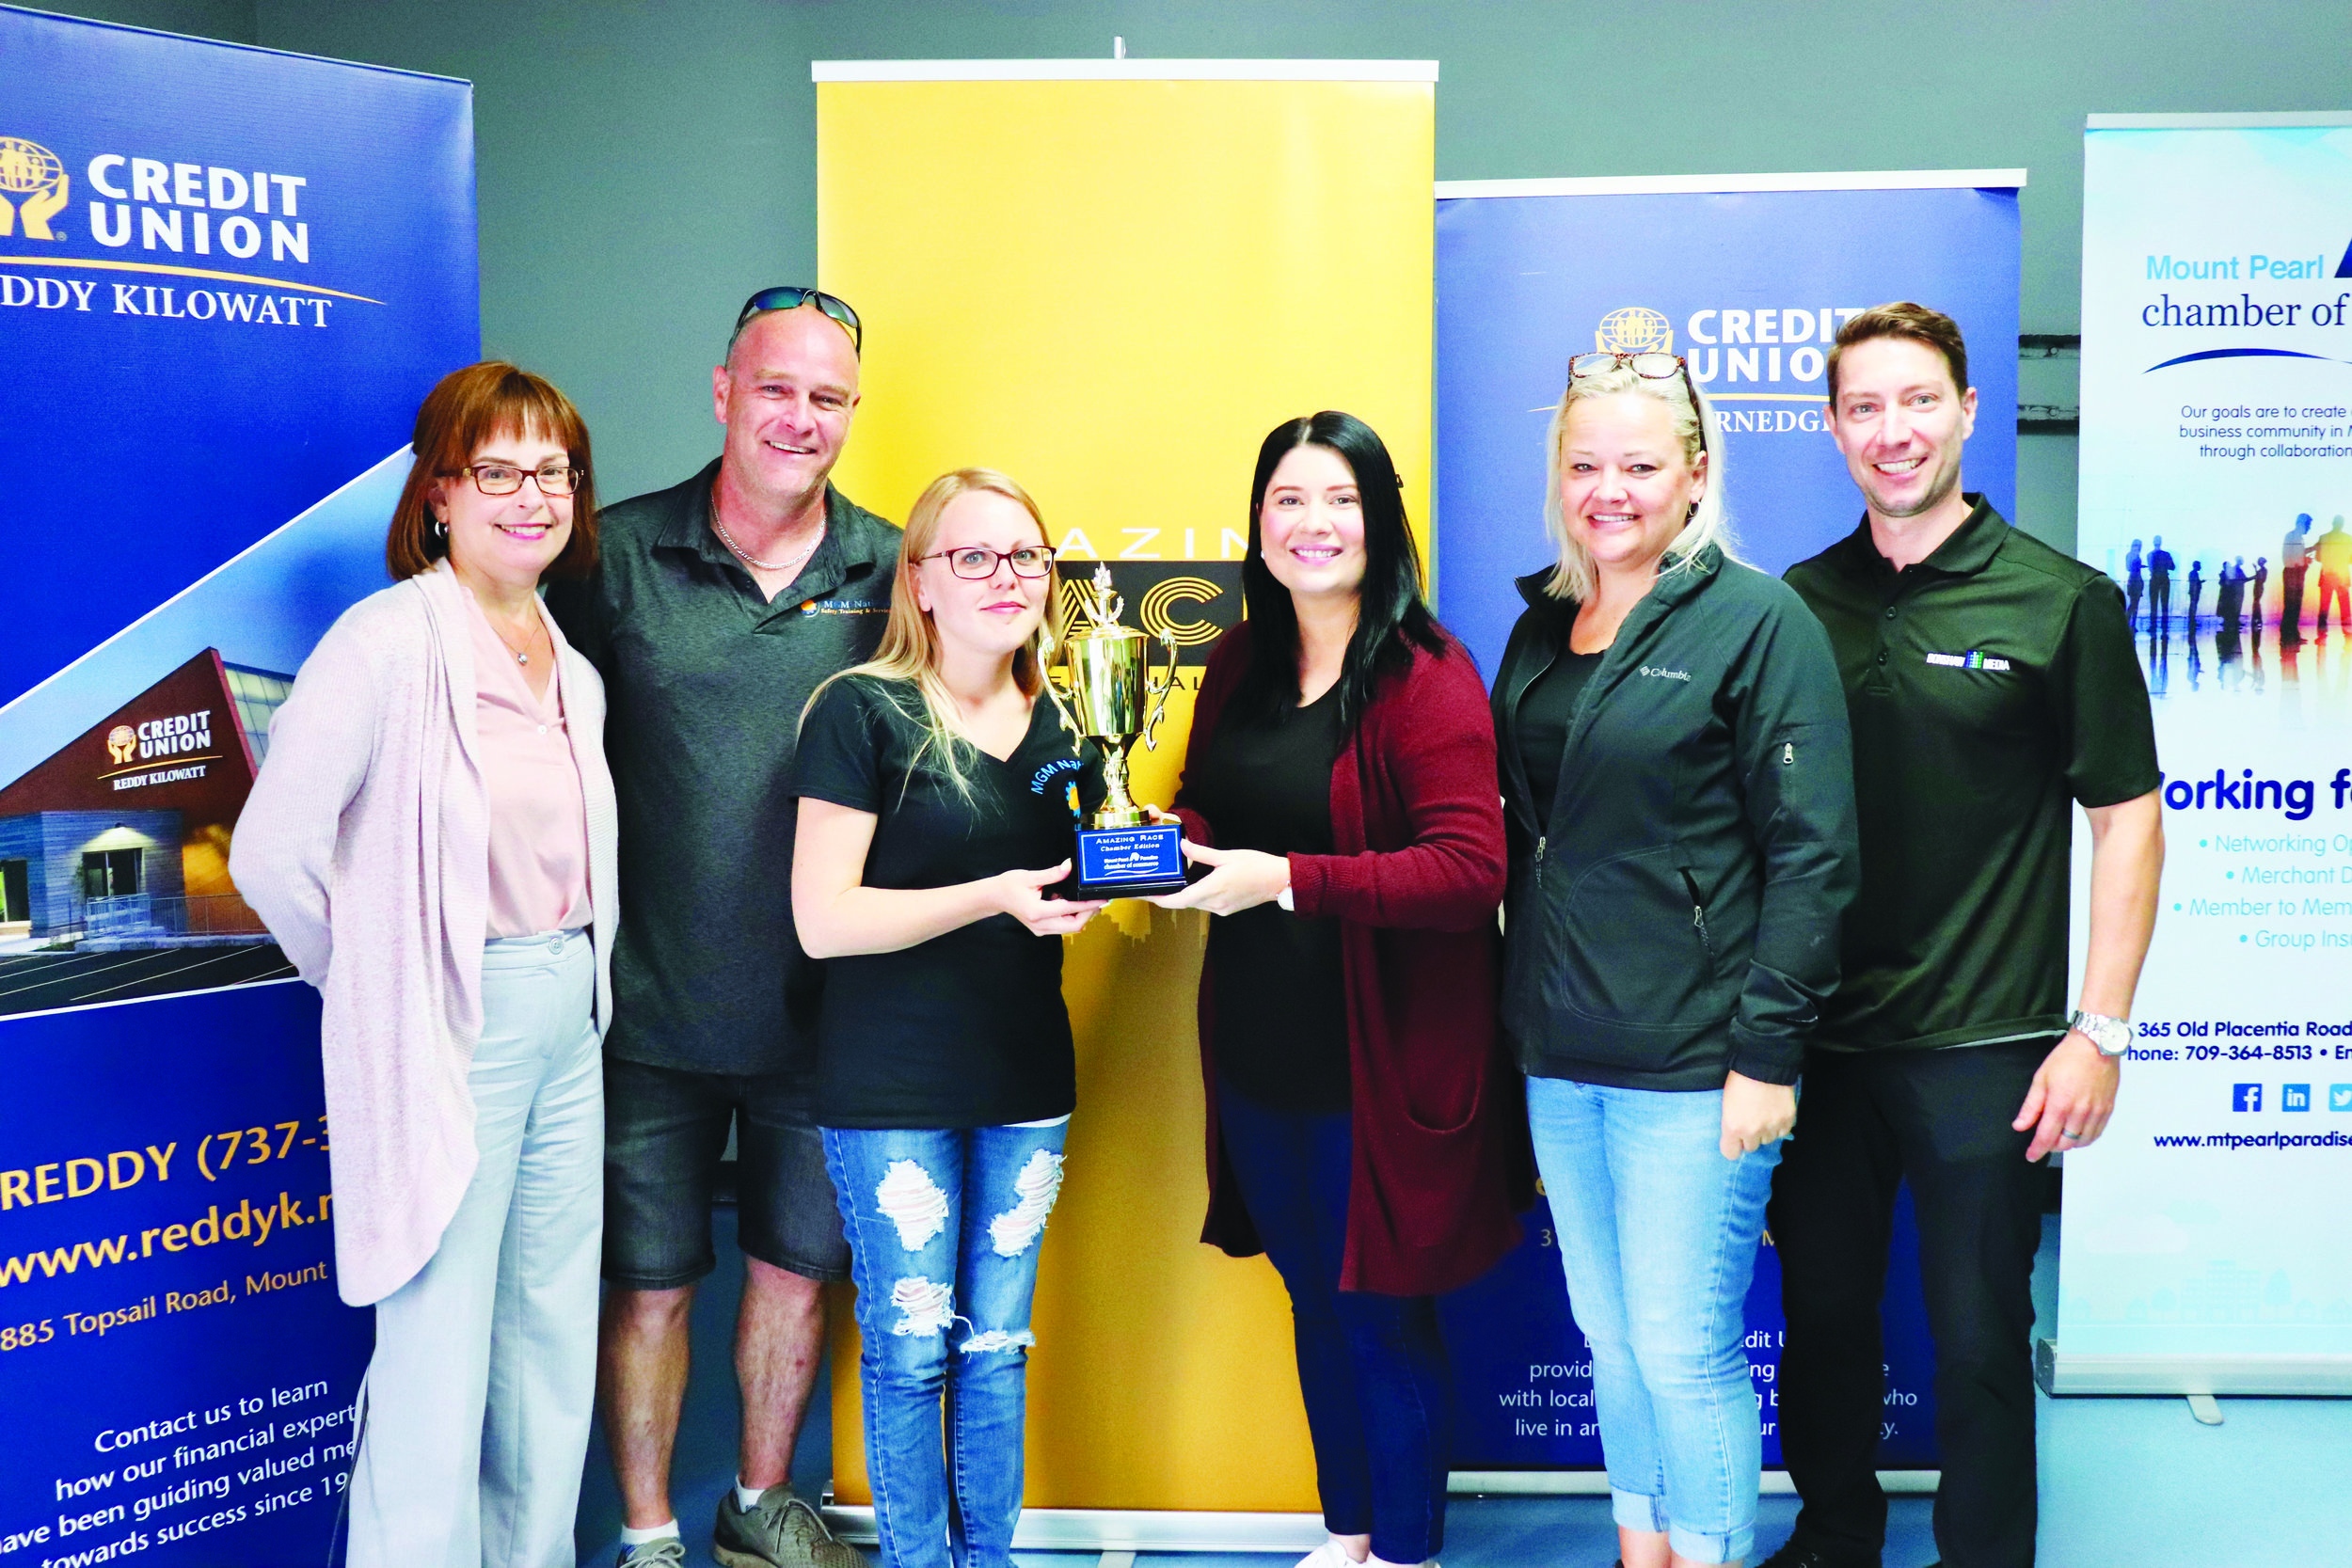 Some of the people who participated in the Mount Pearl – Paradise Chamber of Commerce Amazing Race contest included, from left: Rhonda Goodridge of Reddy Kilowatt Credit Union, winning team members Scott Glynn and Heather Bishop from MGM National Safety and Felicia Ings and Leah Murphy of Get Payroll Solutions, and Chamber of Commerce President Dave Halliday.